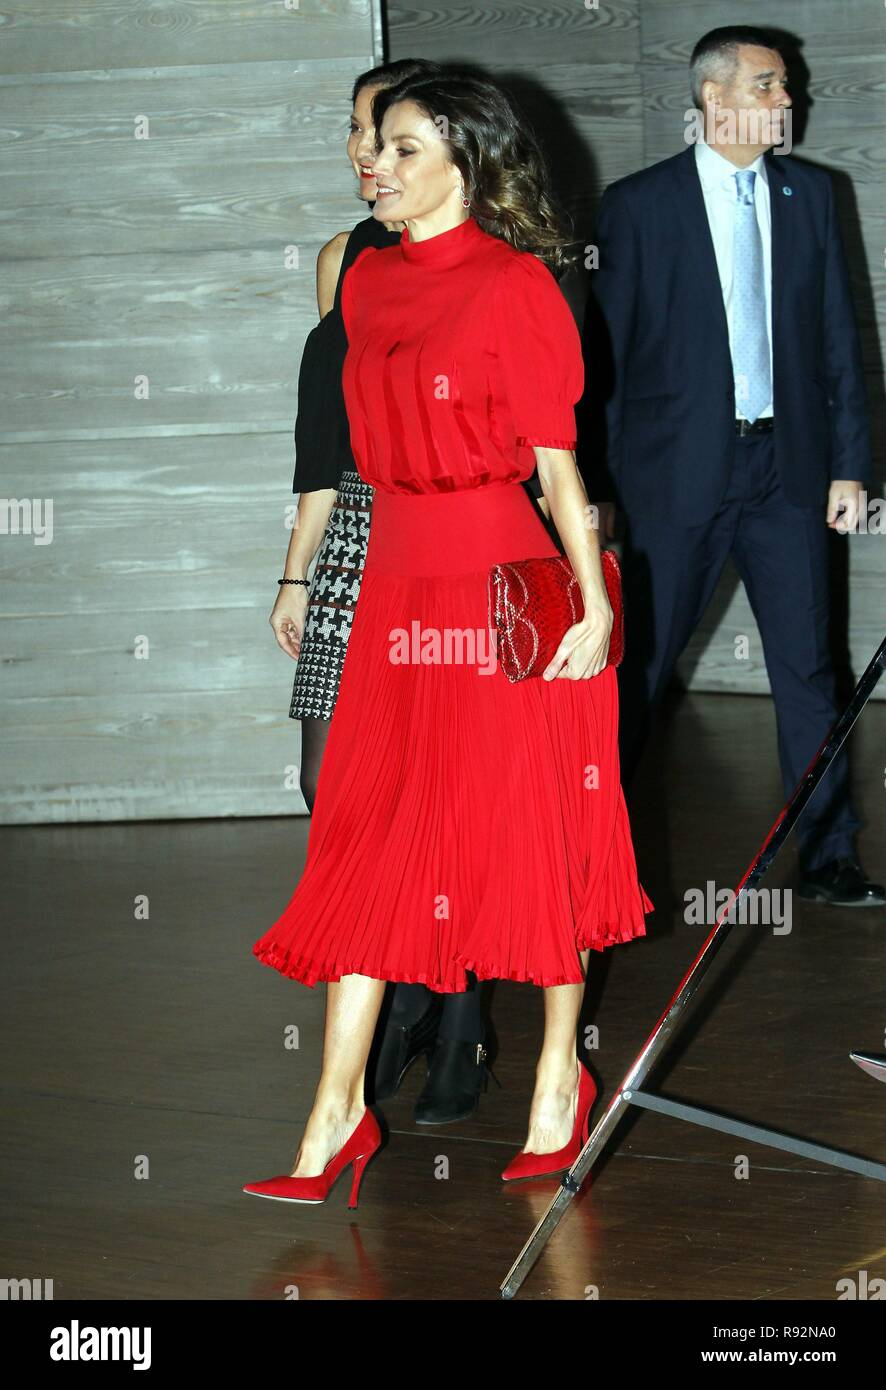 Madrid, Spain  19th December, 2018  Spanish Queen Letizia Ortiz